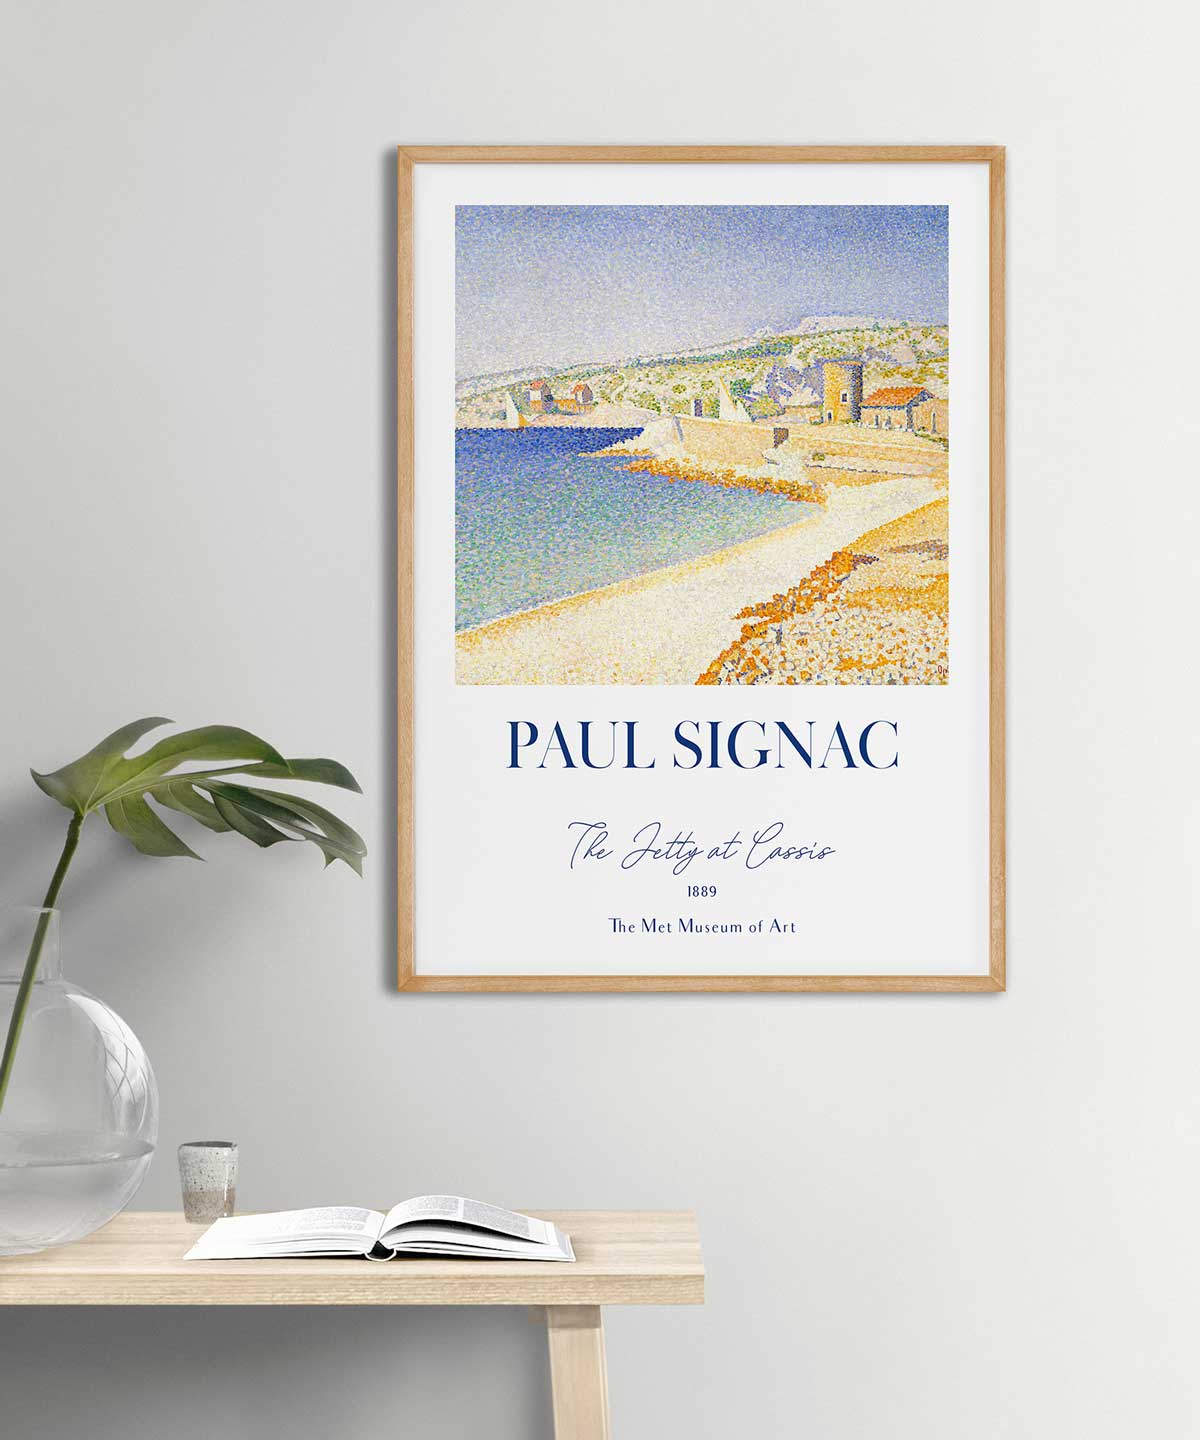 Paul-Signac-The-Jetty-at-Cassis-Poster-Wooden-Frame-Duwart